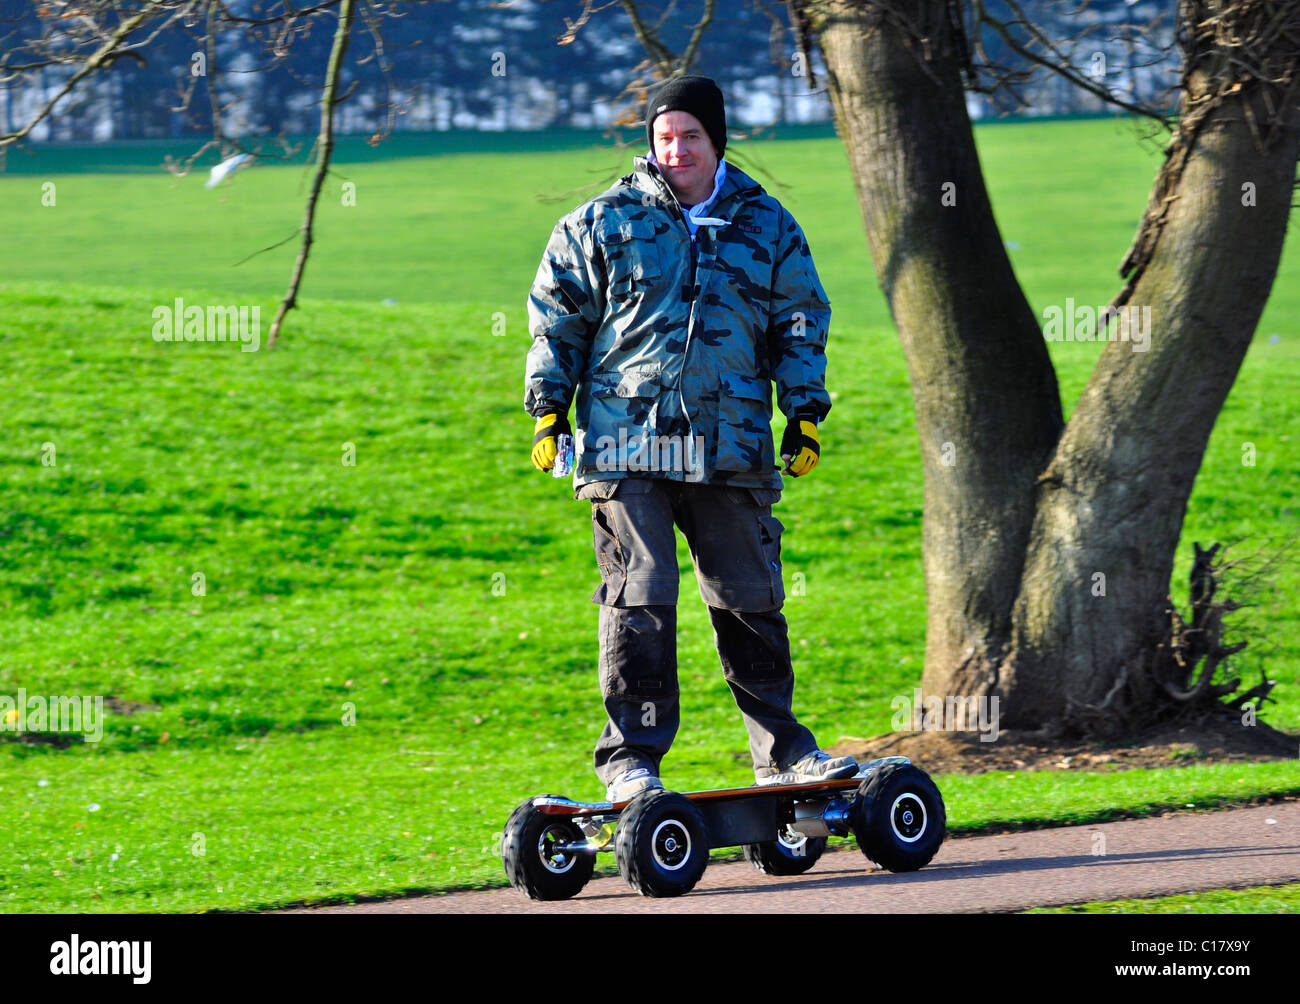 Man riding electric skate board - Stock Image